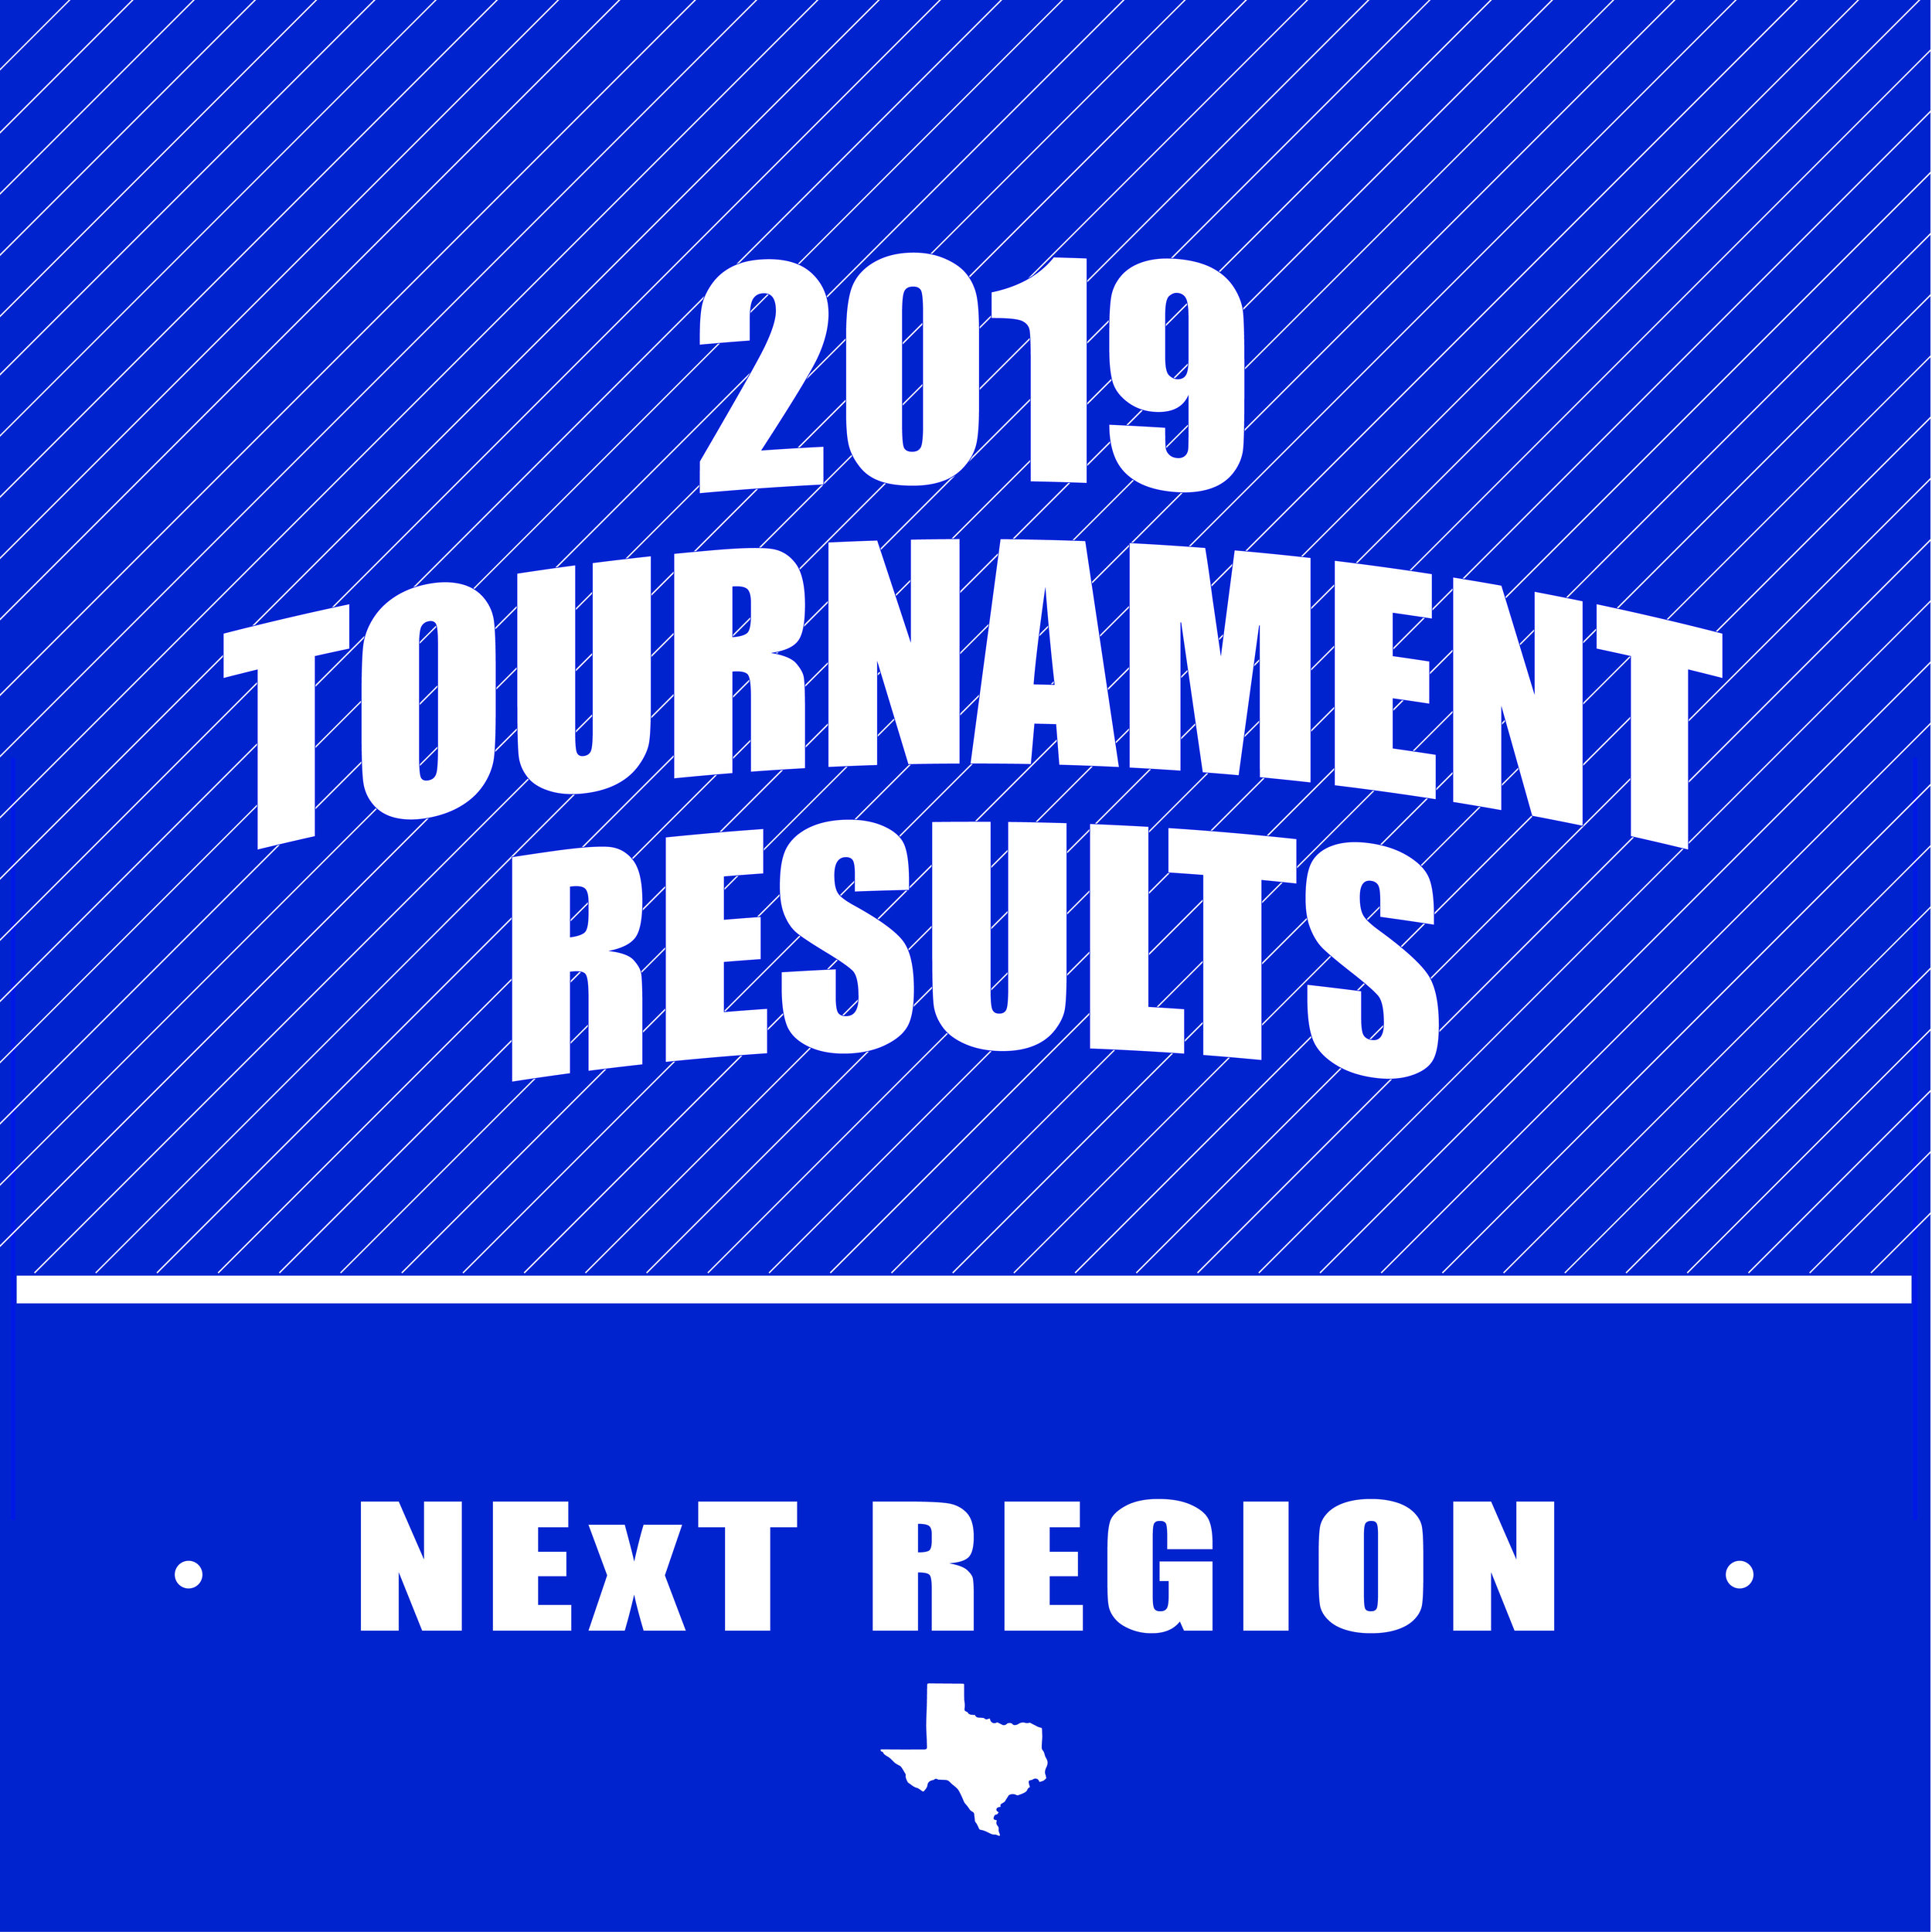 2019 Tournament Results square-04.jpg